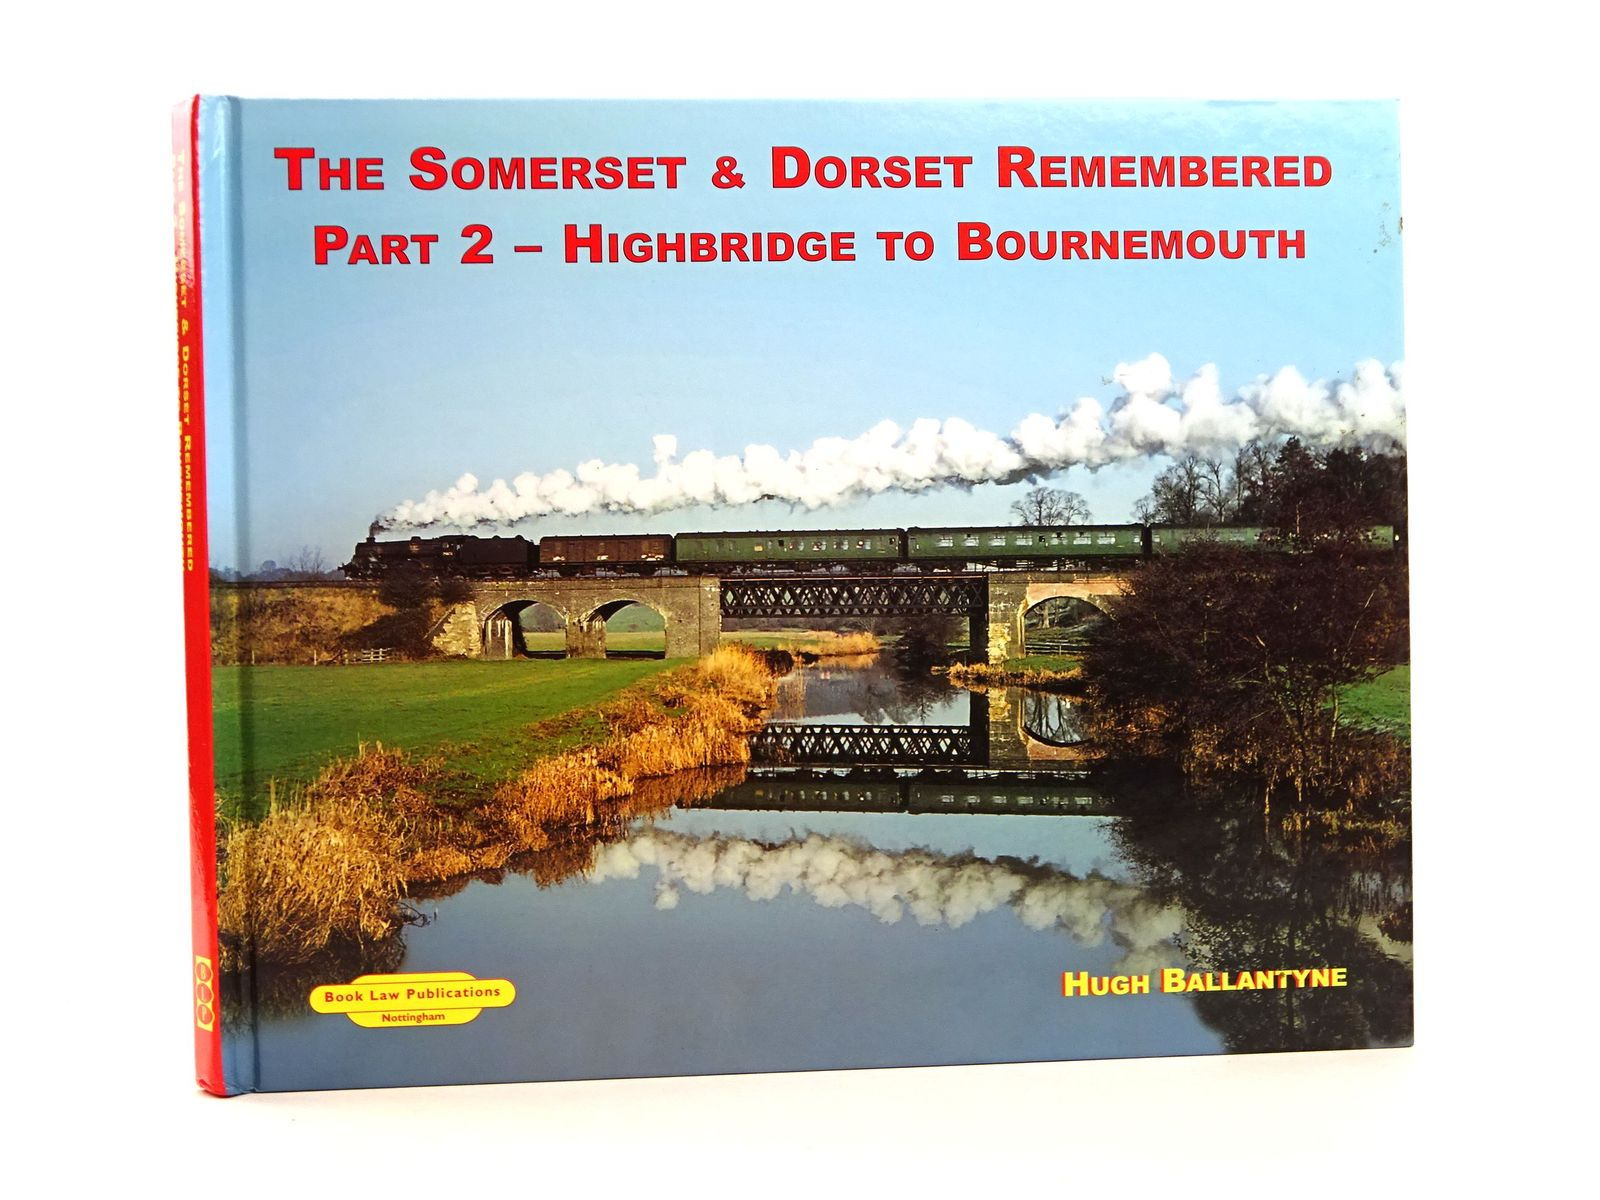 Photo of THE SOMERSET & DORSET REMEMBERED PART 2 - HIGHBRIDGE TO BOURNEMOUTH written by Ballantyne, Hugh published by Book Law Publications (STOCK CODE: 1818151)  for sale by Stella & Rose's Books